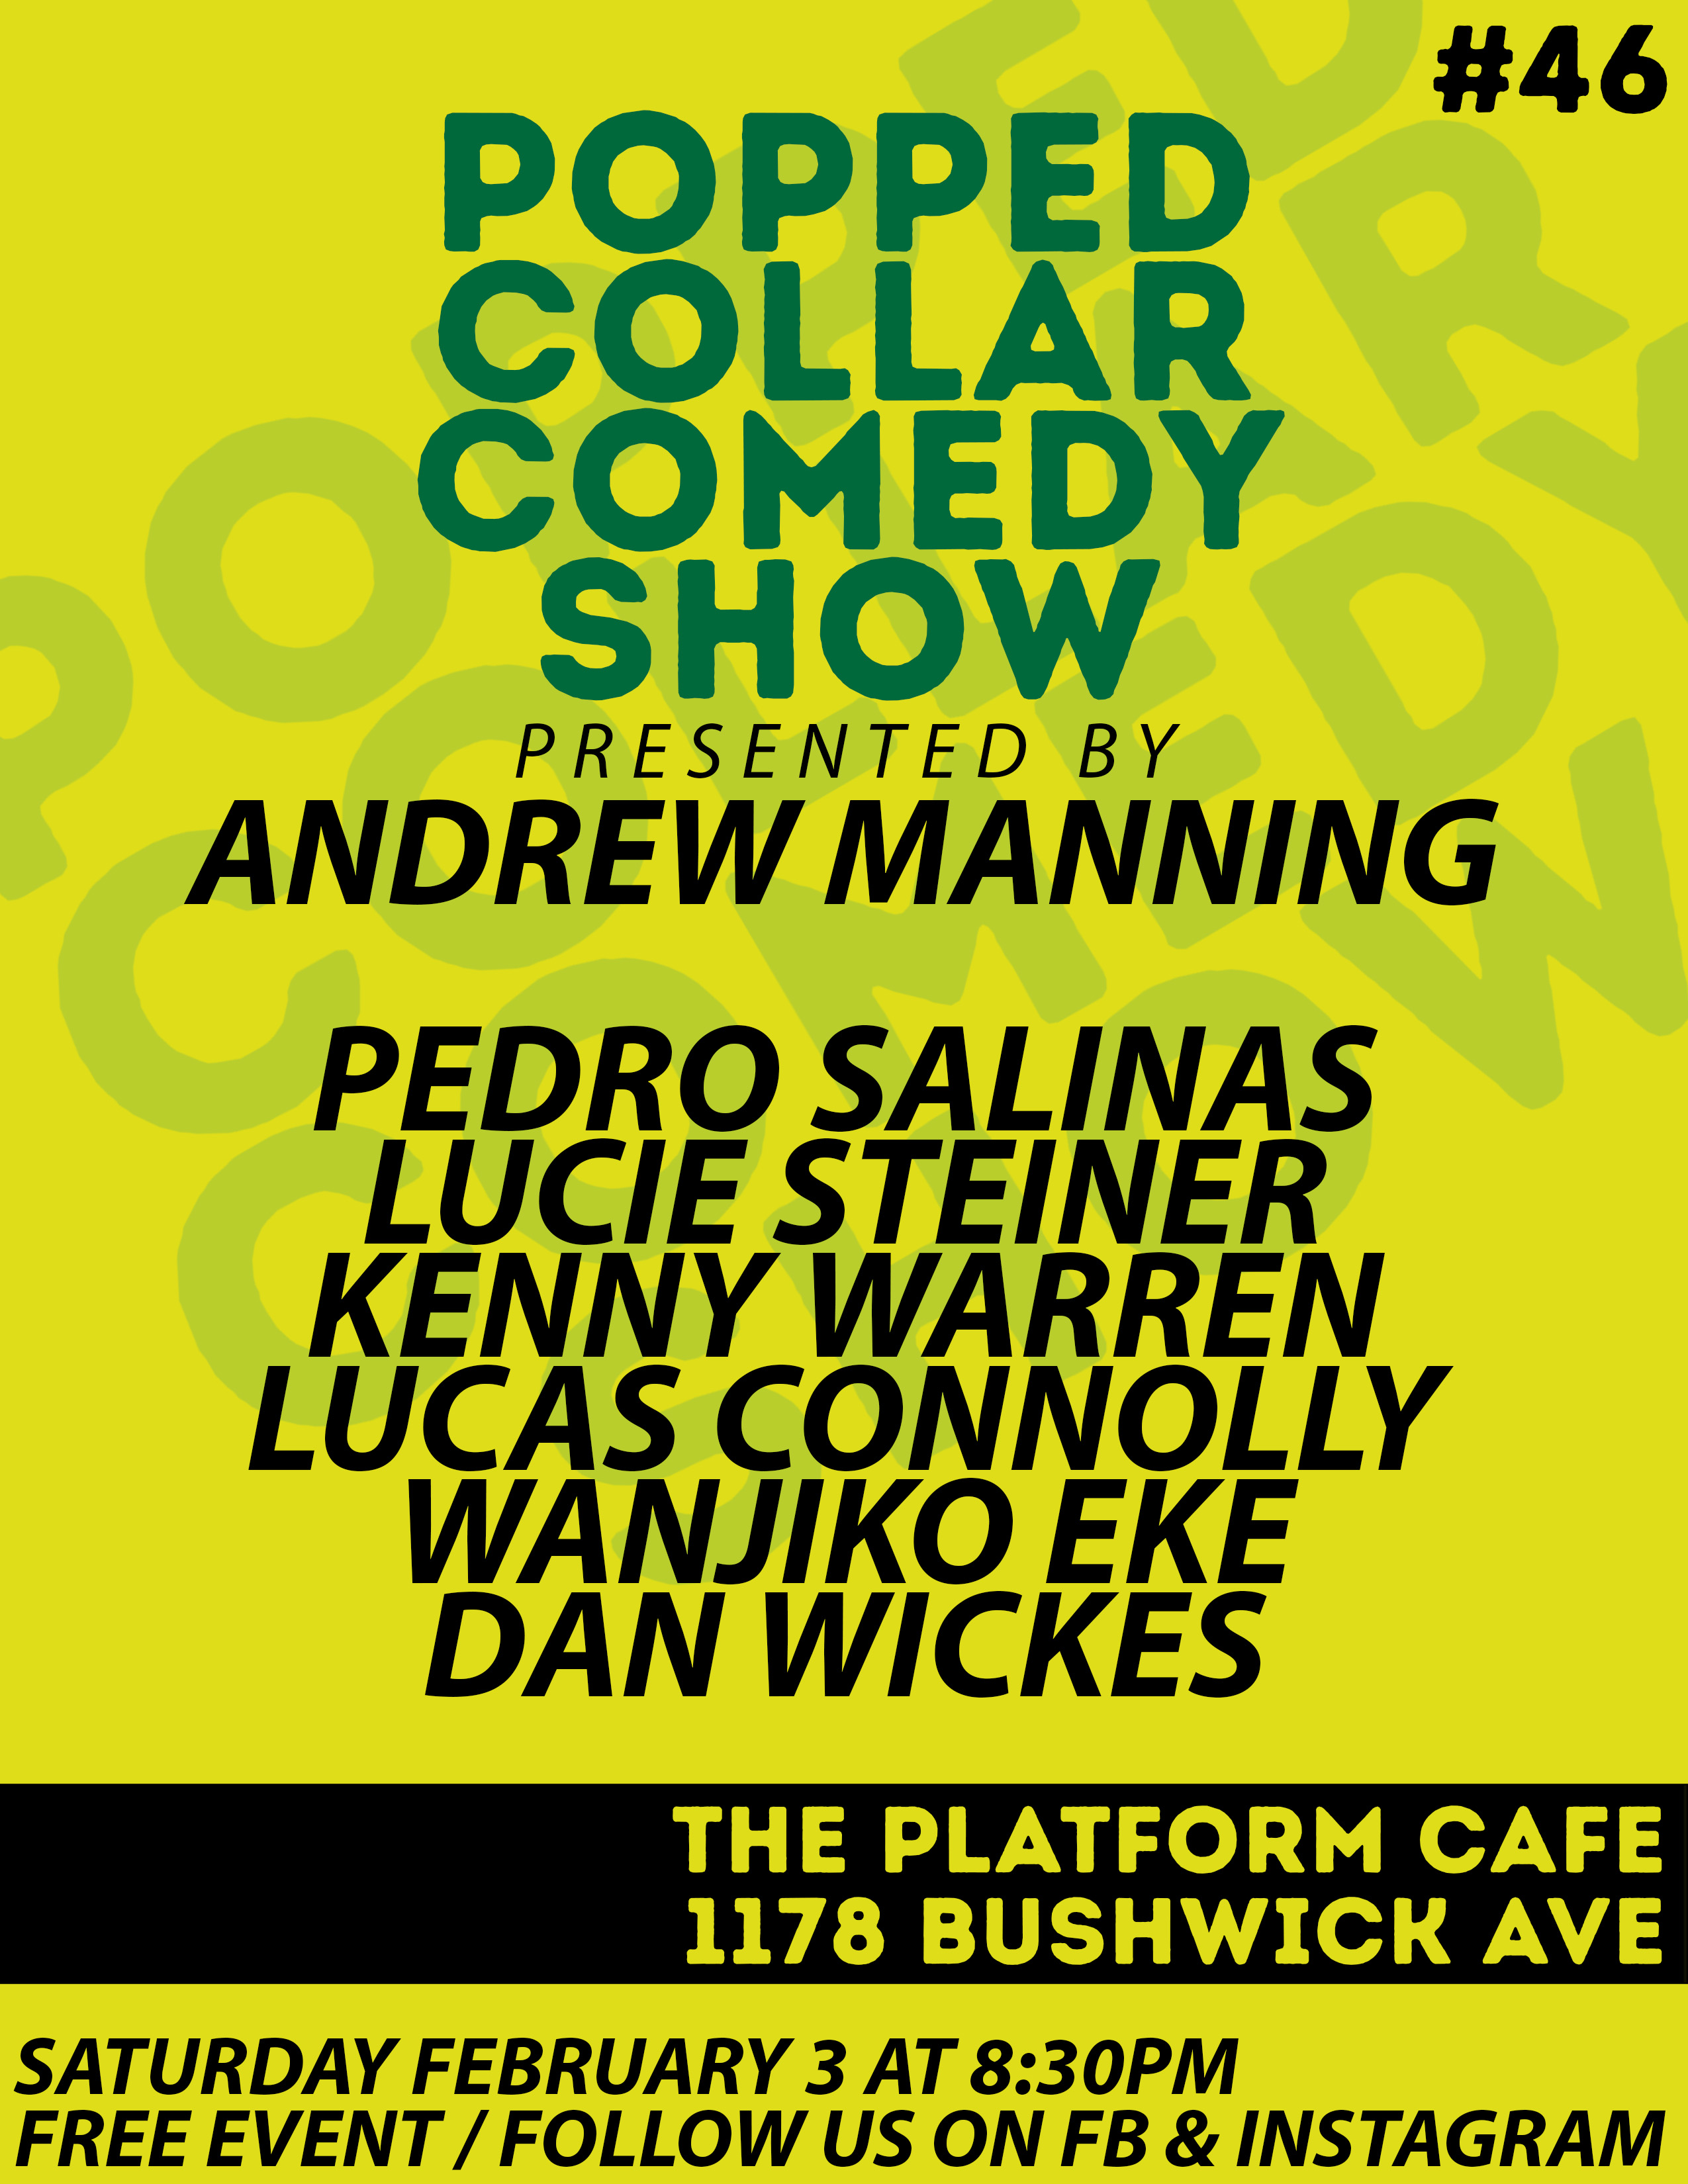 Popped Collar Comedy Show (FREE)